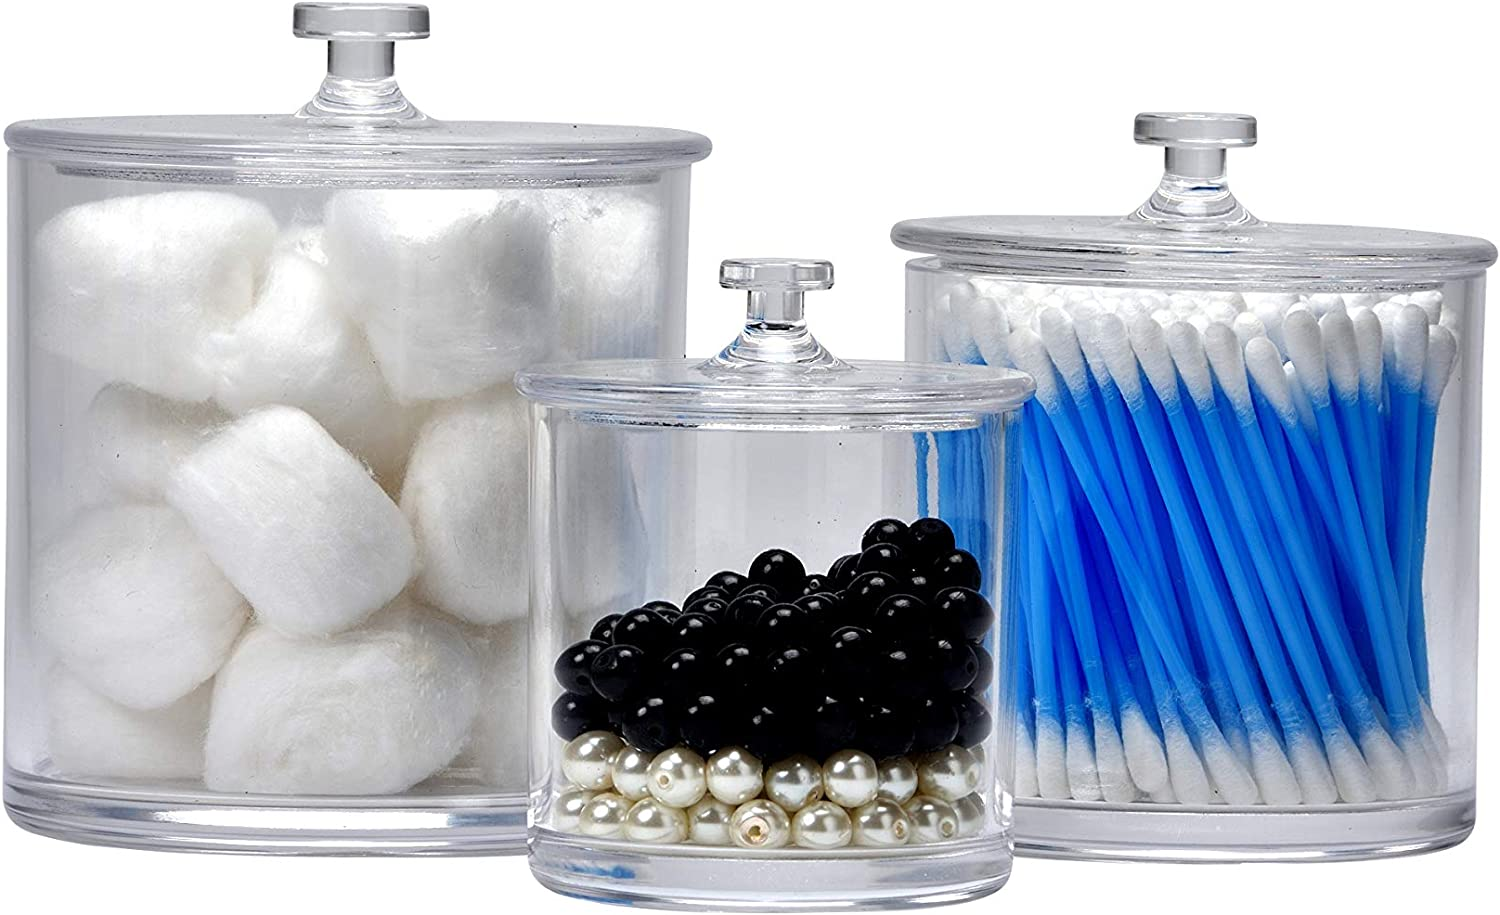 Easyway Multifunctional Acrylic Jars – Plastic Jars – Great Home Decor Pieces – Apothecary Jars Large – Apothecary Jars Bathroom – Bath Bomb Holder (Pack of Three)